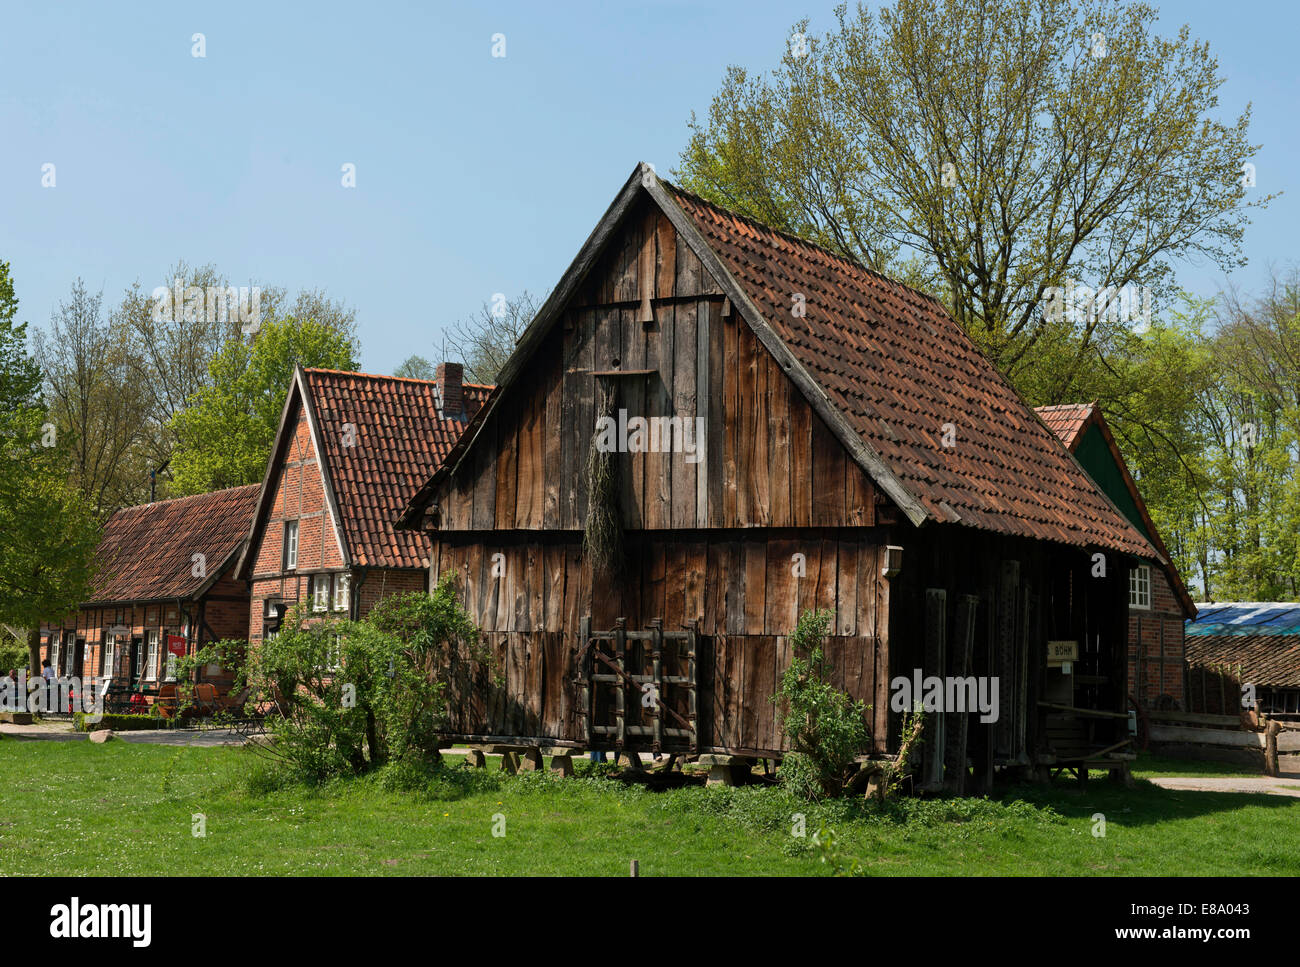 Barn on pillars with stone slabs to protect the grain from mice, Mühlenhof-Freilichtmuseum Münster open - Stock Image